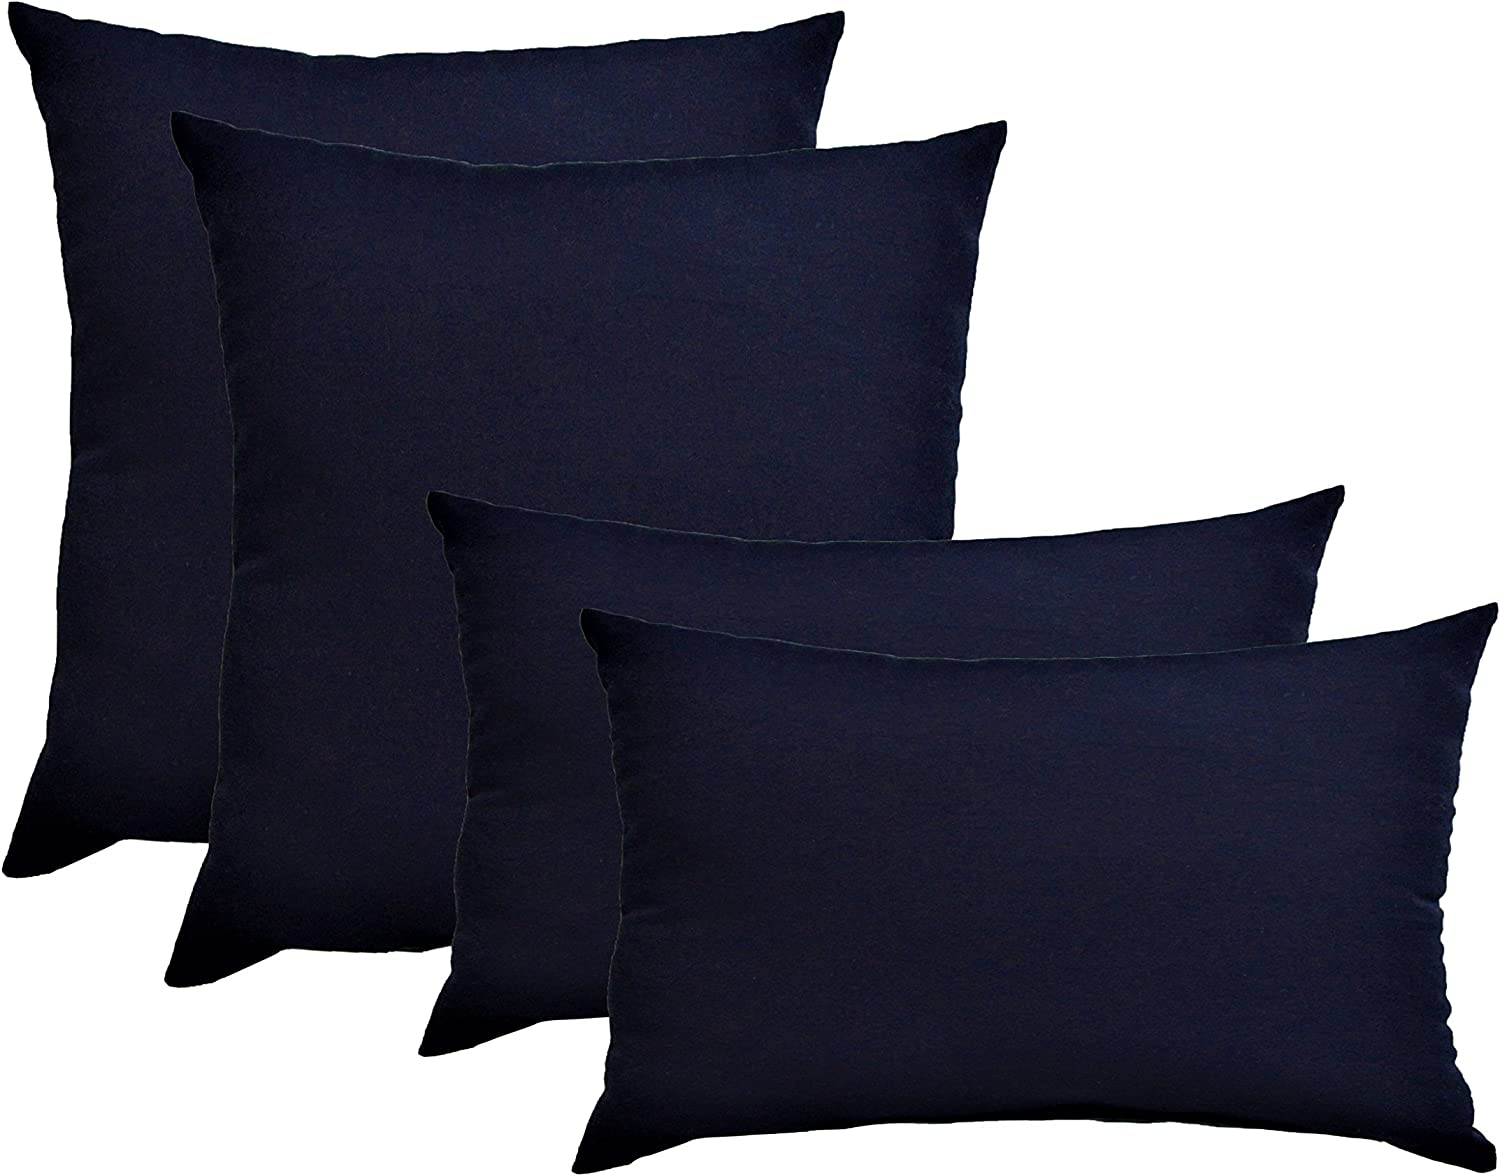 Amazon Com Set Of 4 Indoor Outdoor Pillows 2 Square Pillows 2 Rectangle Lumbar Decorative Throw Pillows Solid Navy Blue Fabric 17 X 17 Square 12 X 20 Lumbar Kitchen Dining